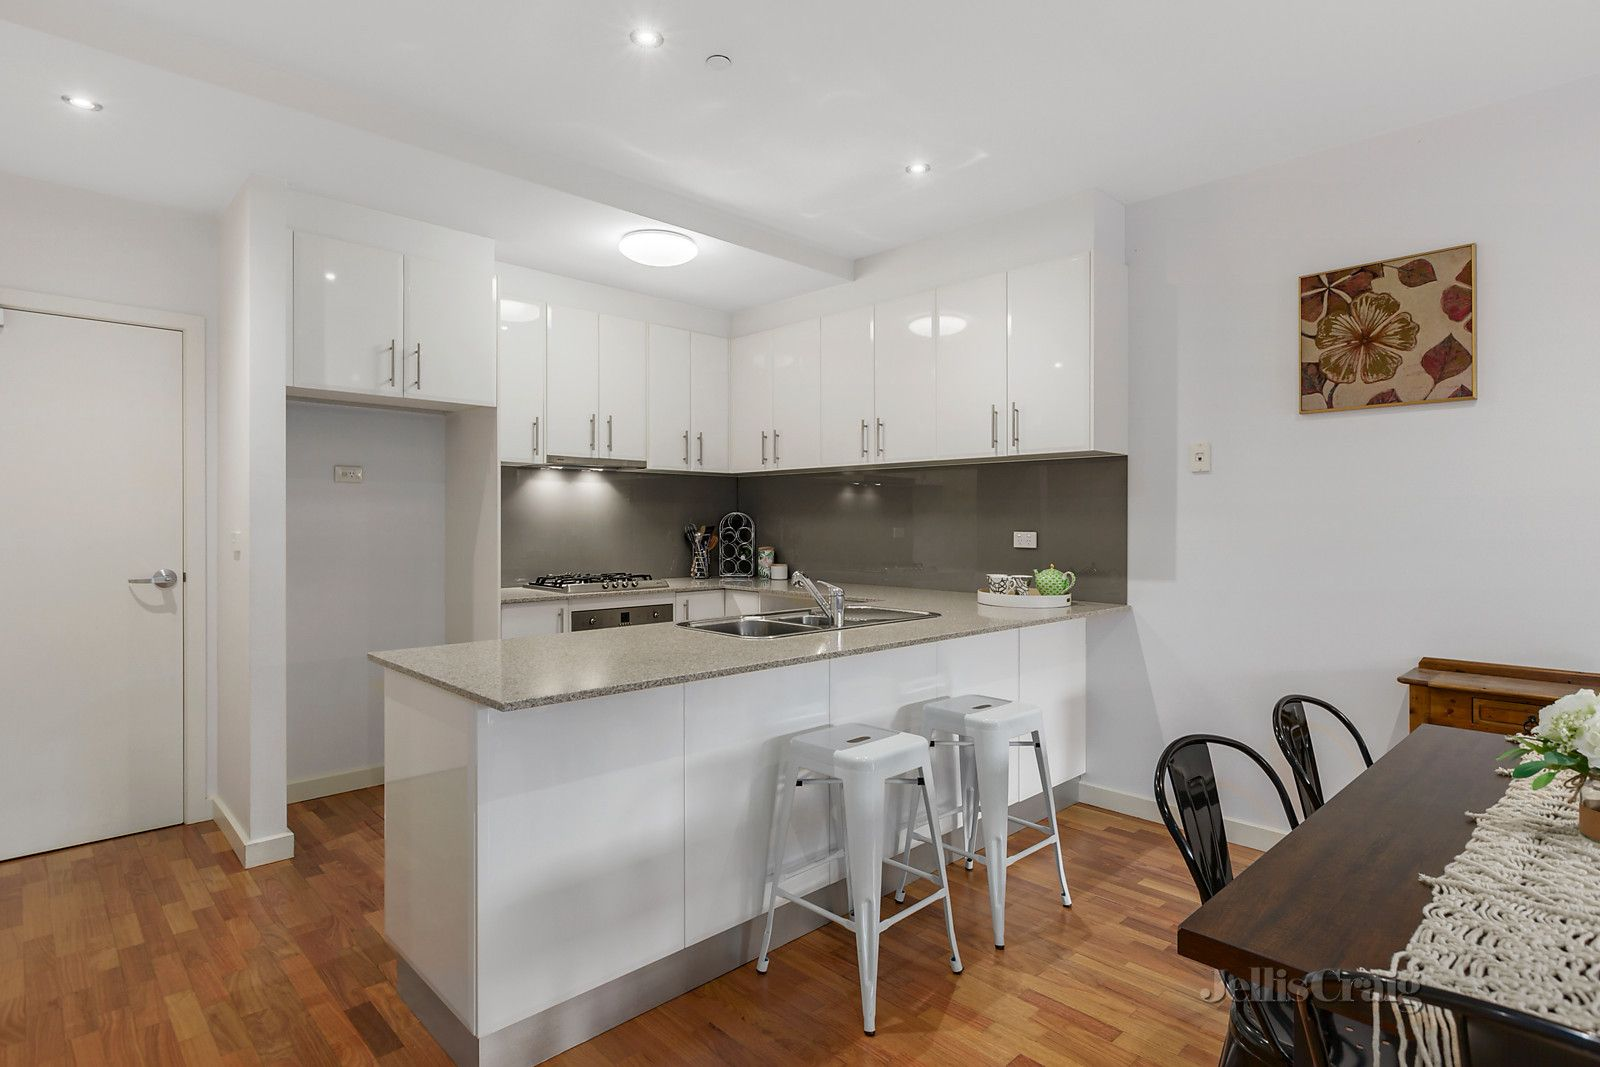 8/107 Whittens Lane, Doncaster VIC 3108, Image 0